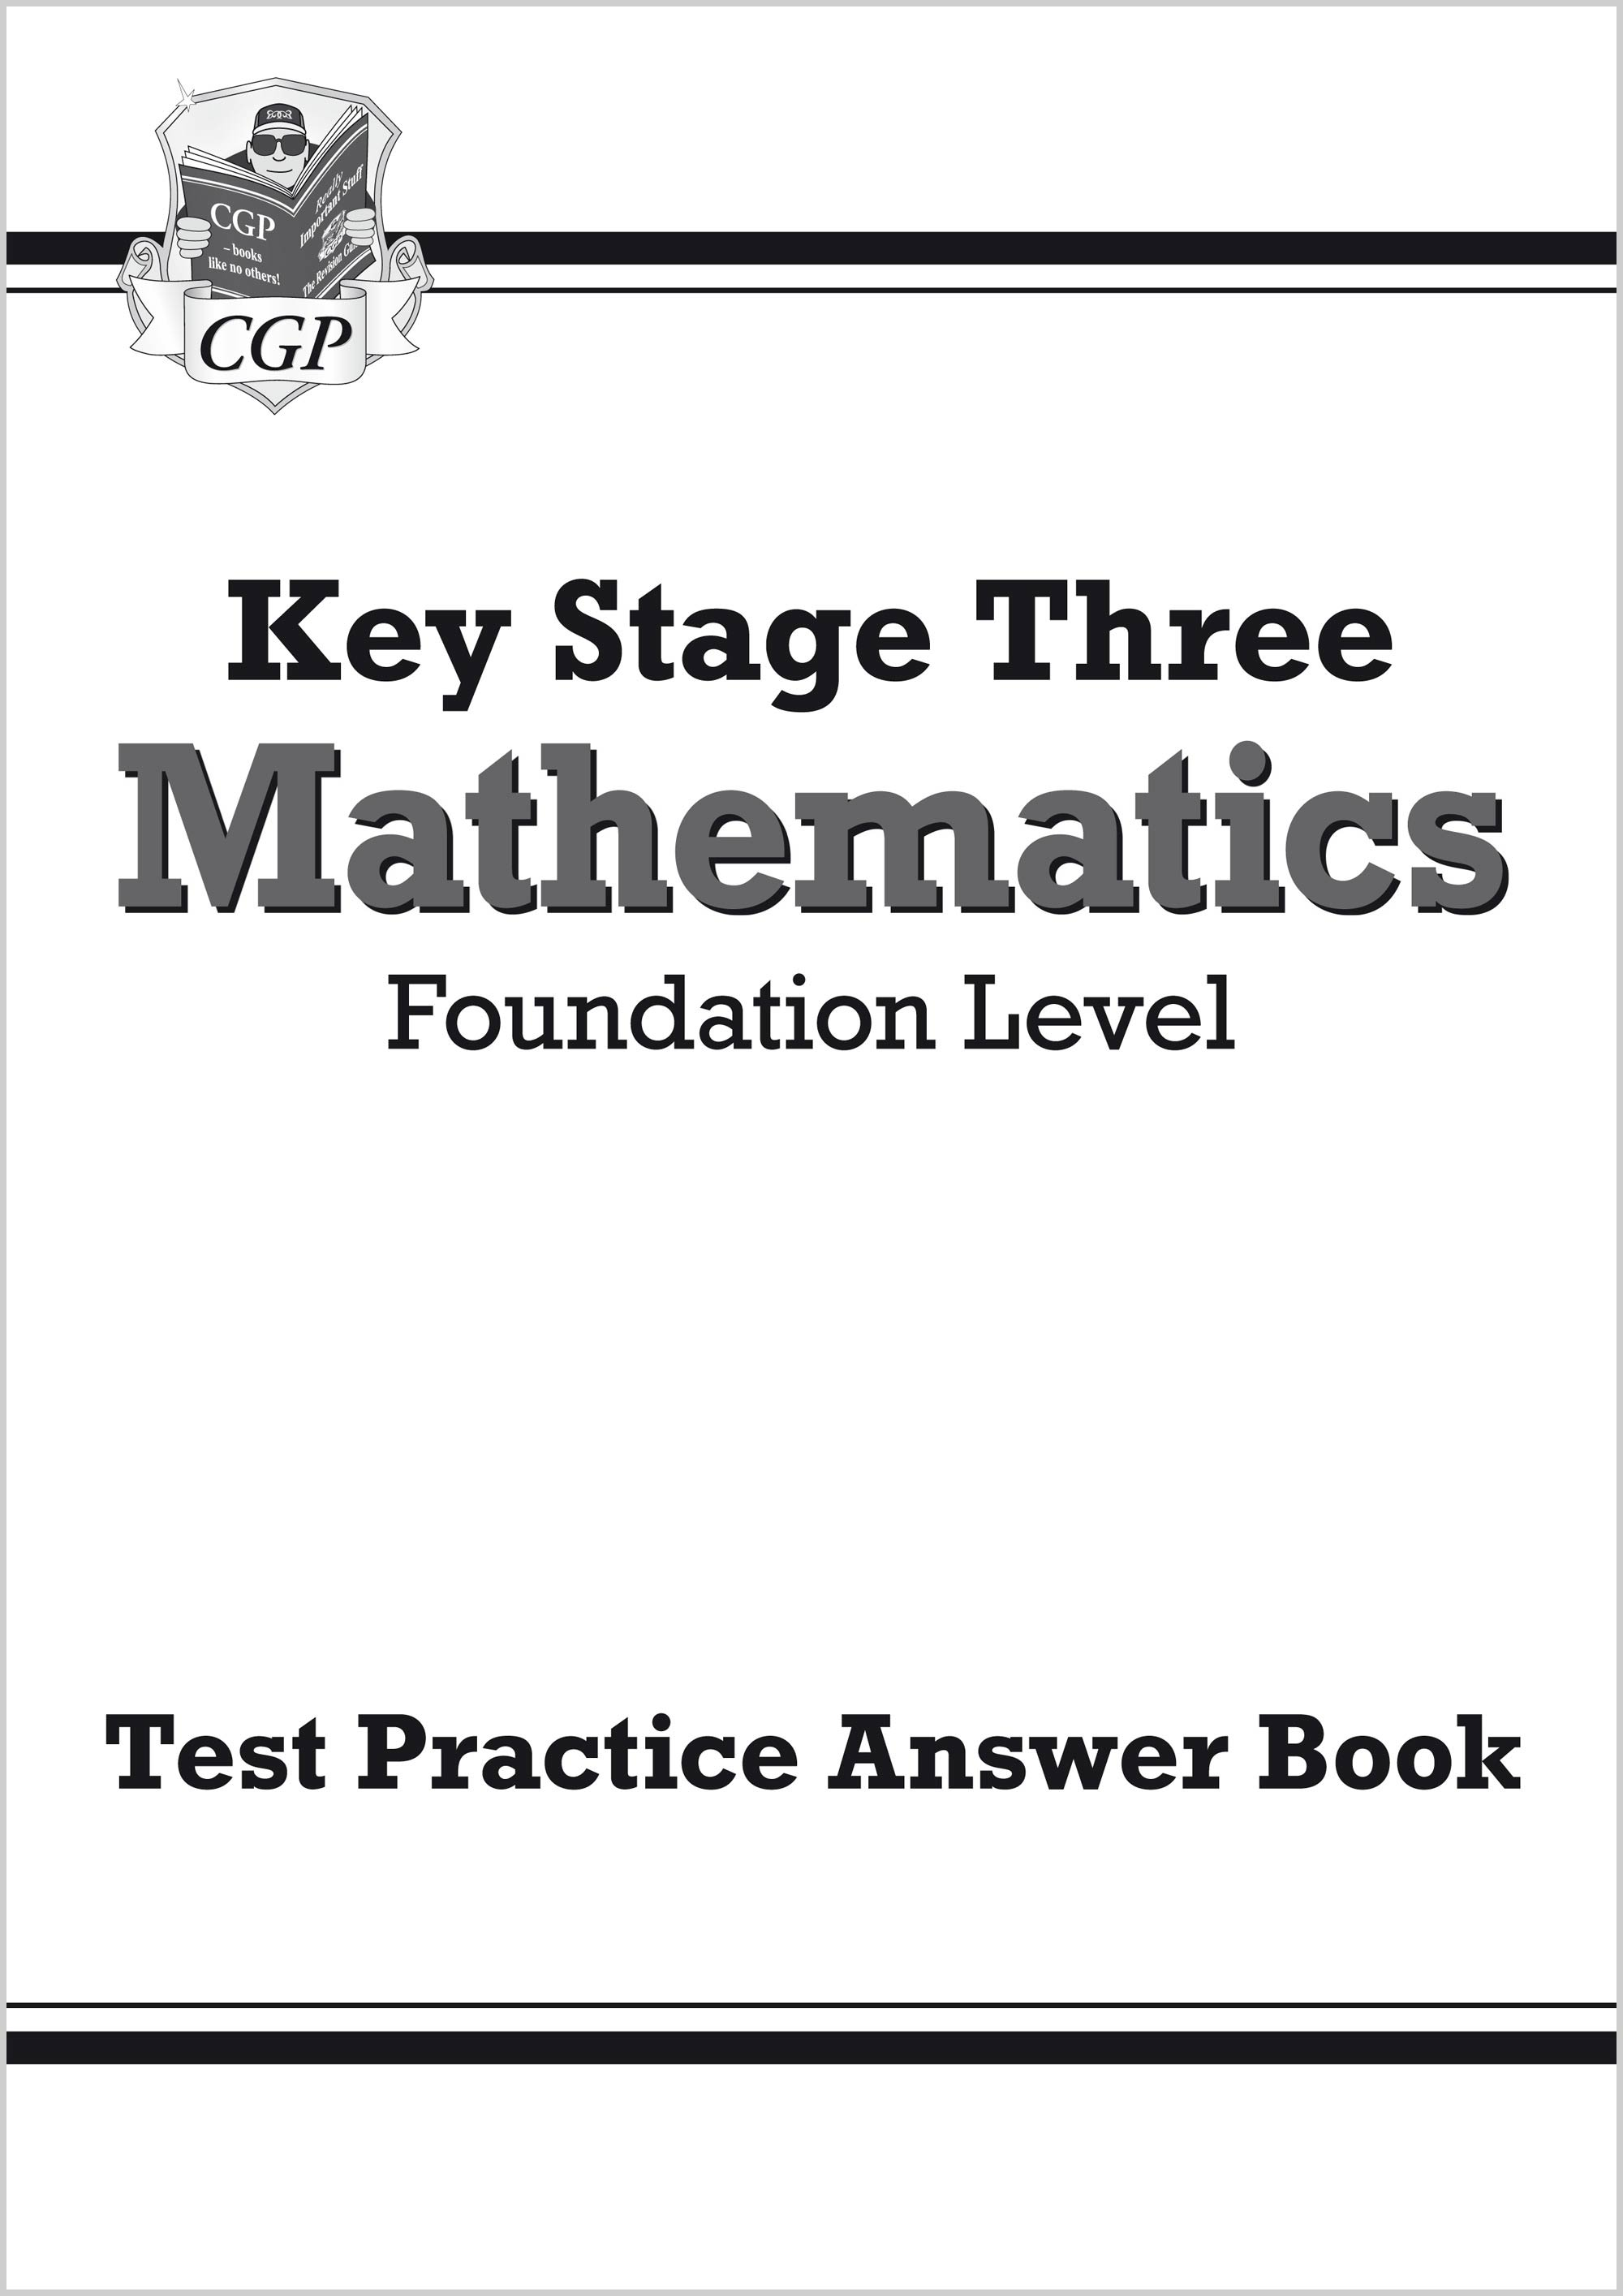 MFQA32 - KS3 Maths Answers for Test Practice Workbook - Foundation